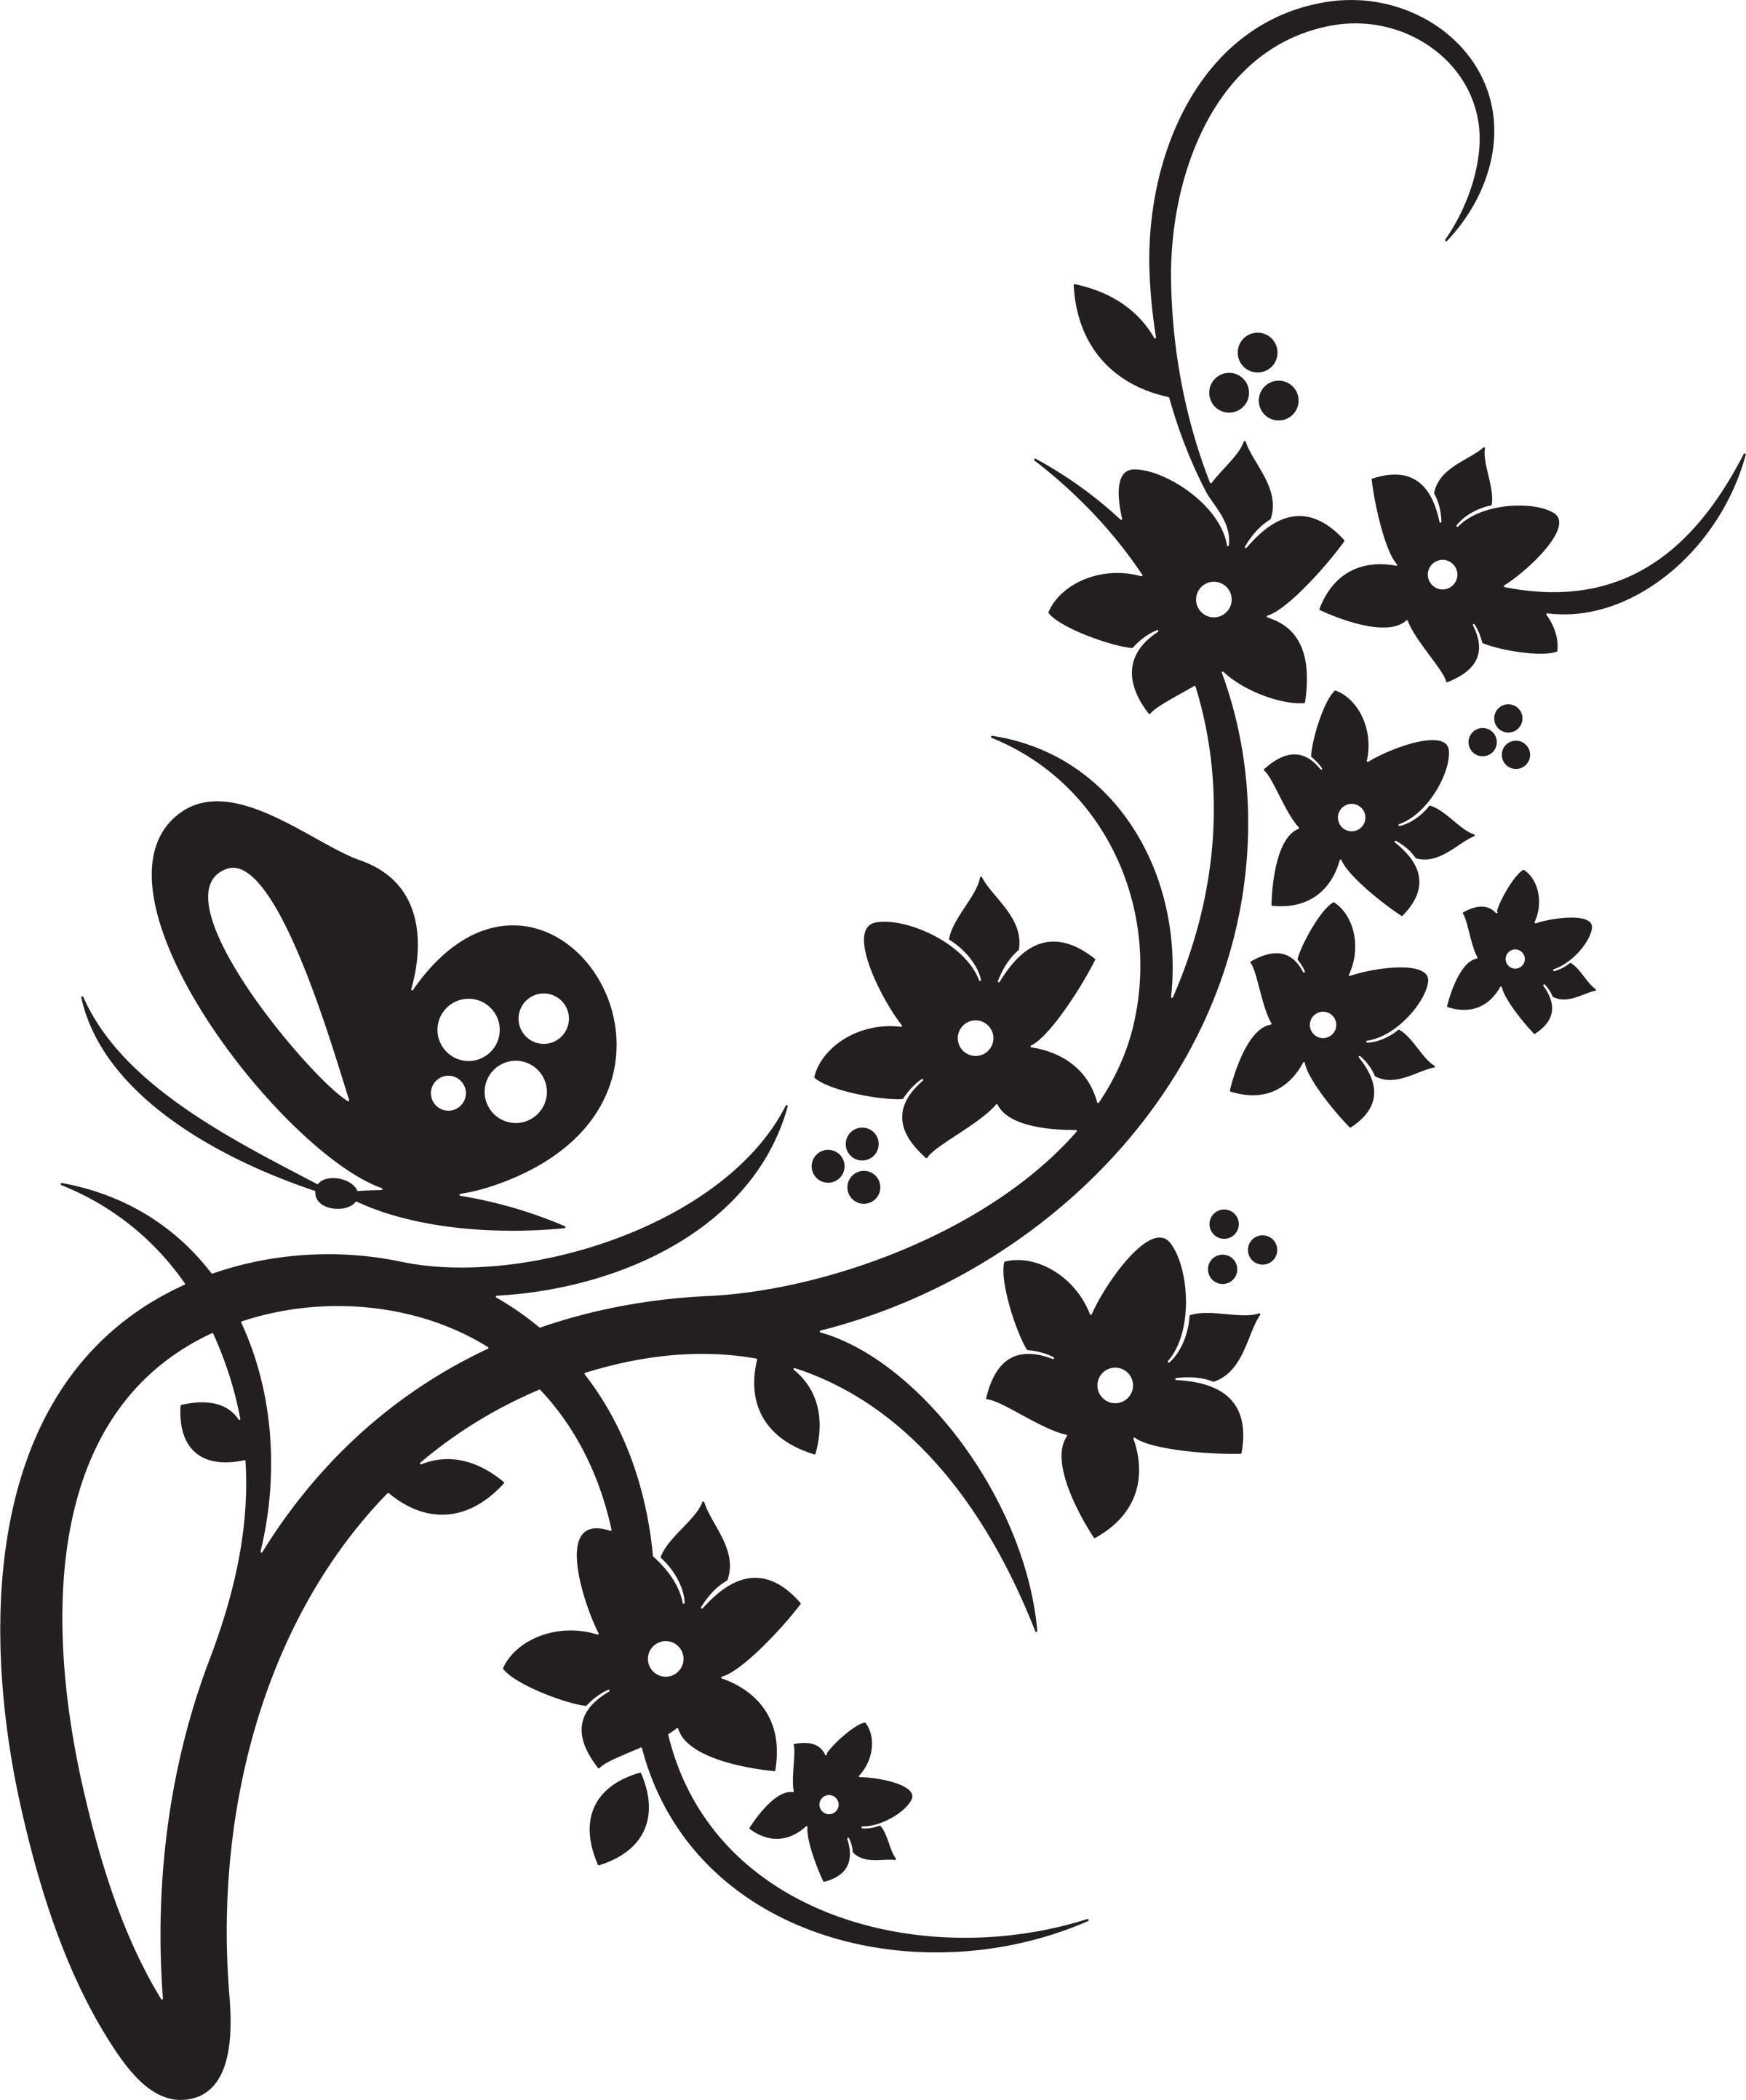 Floral border clipart black and white svg royalty free Flower Border Clipart Black And White svg royalty free